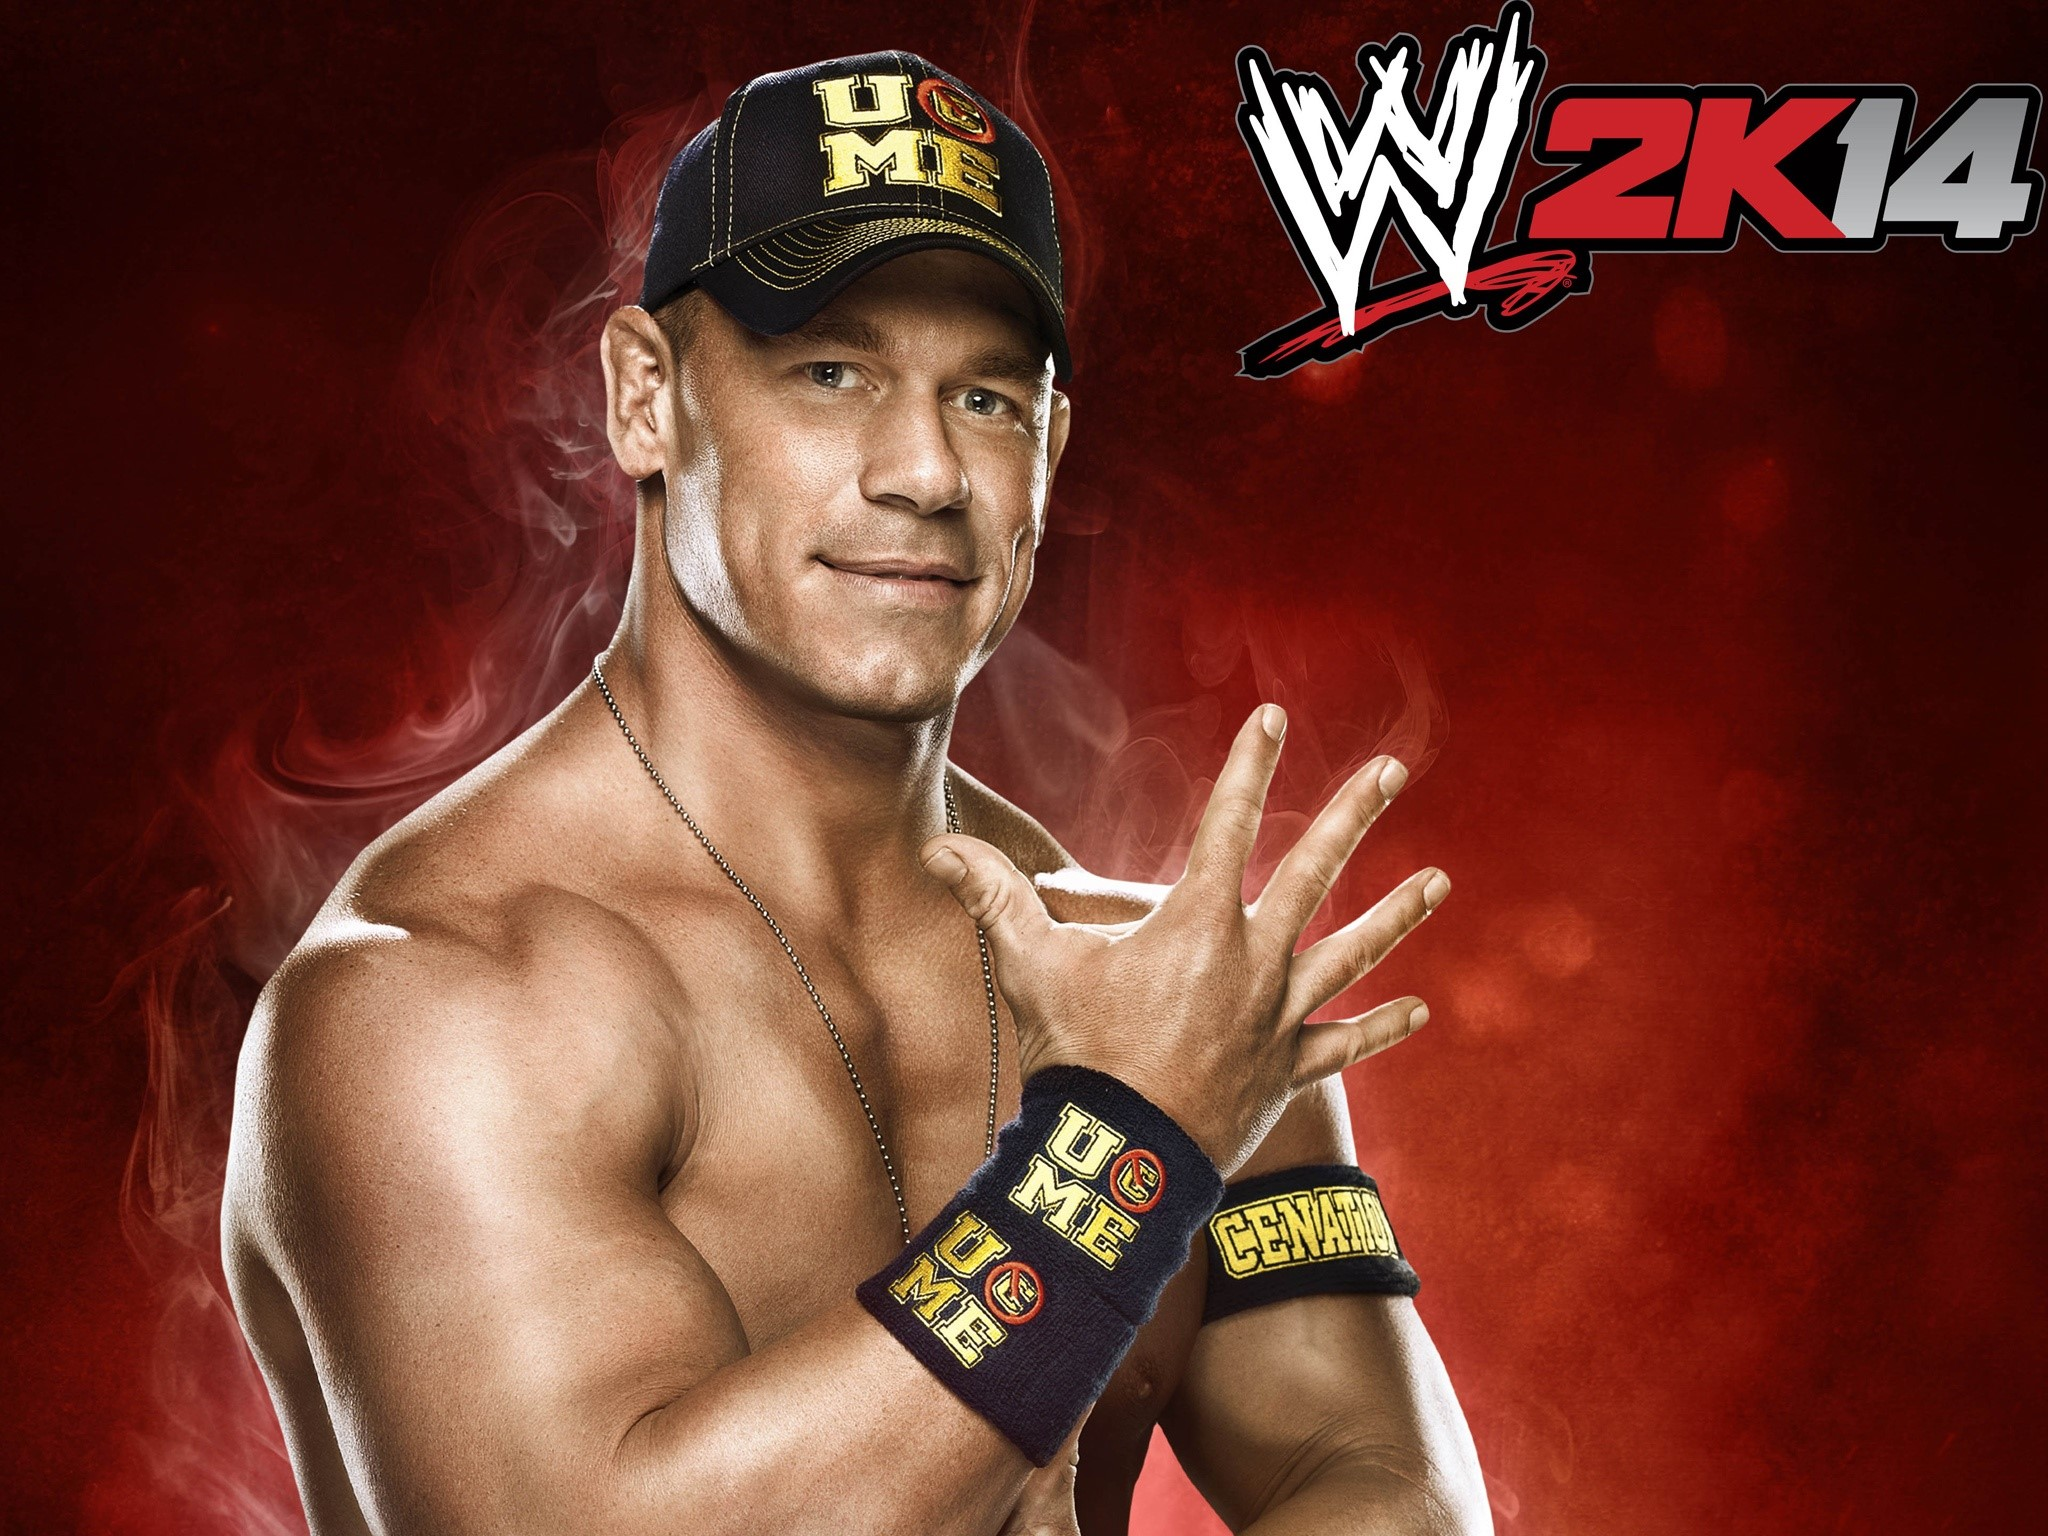 Wallpaper John Cena WWE Images